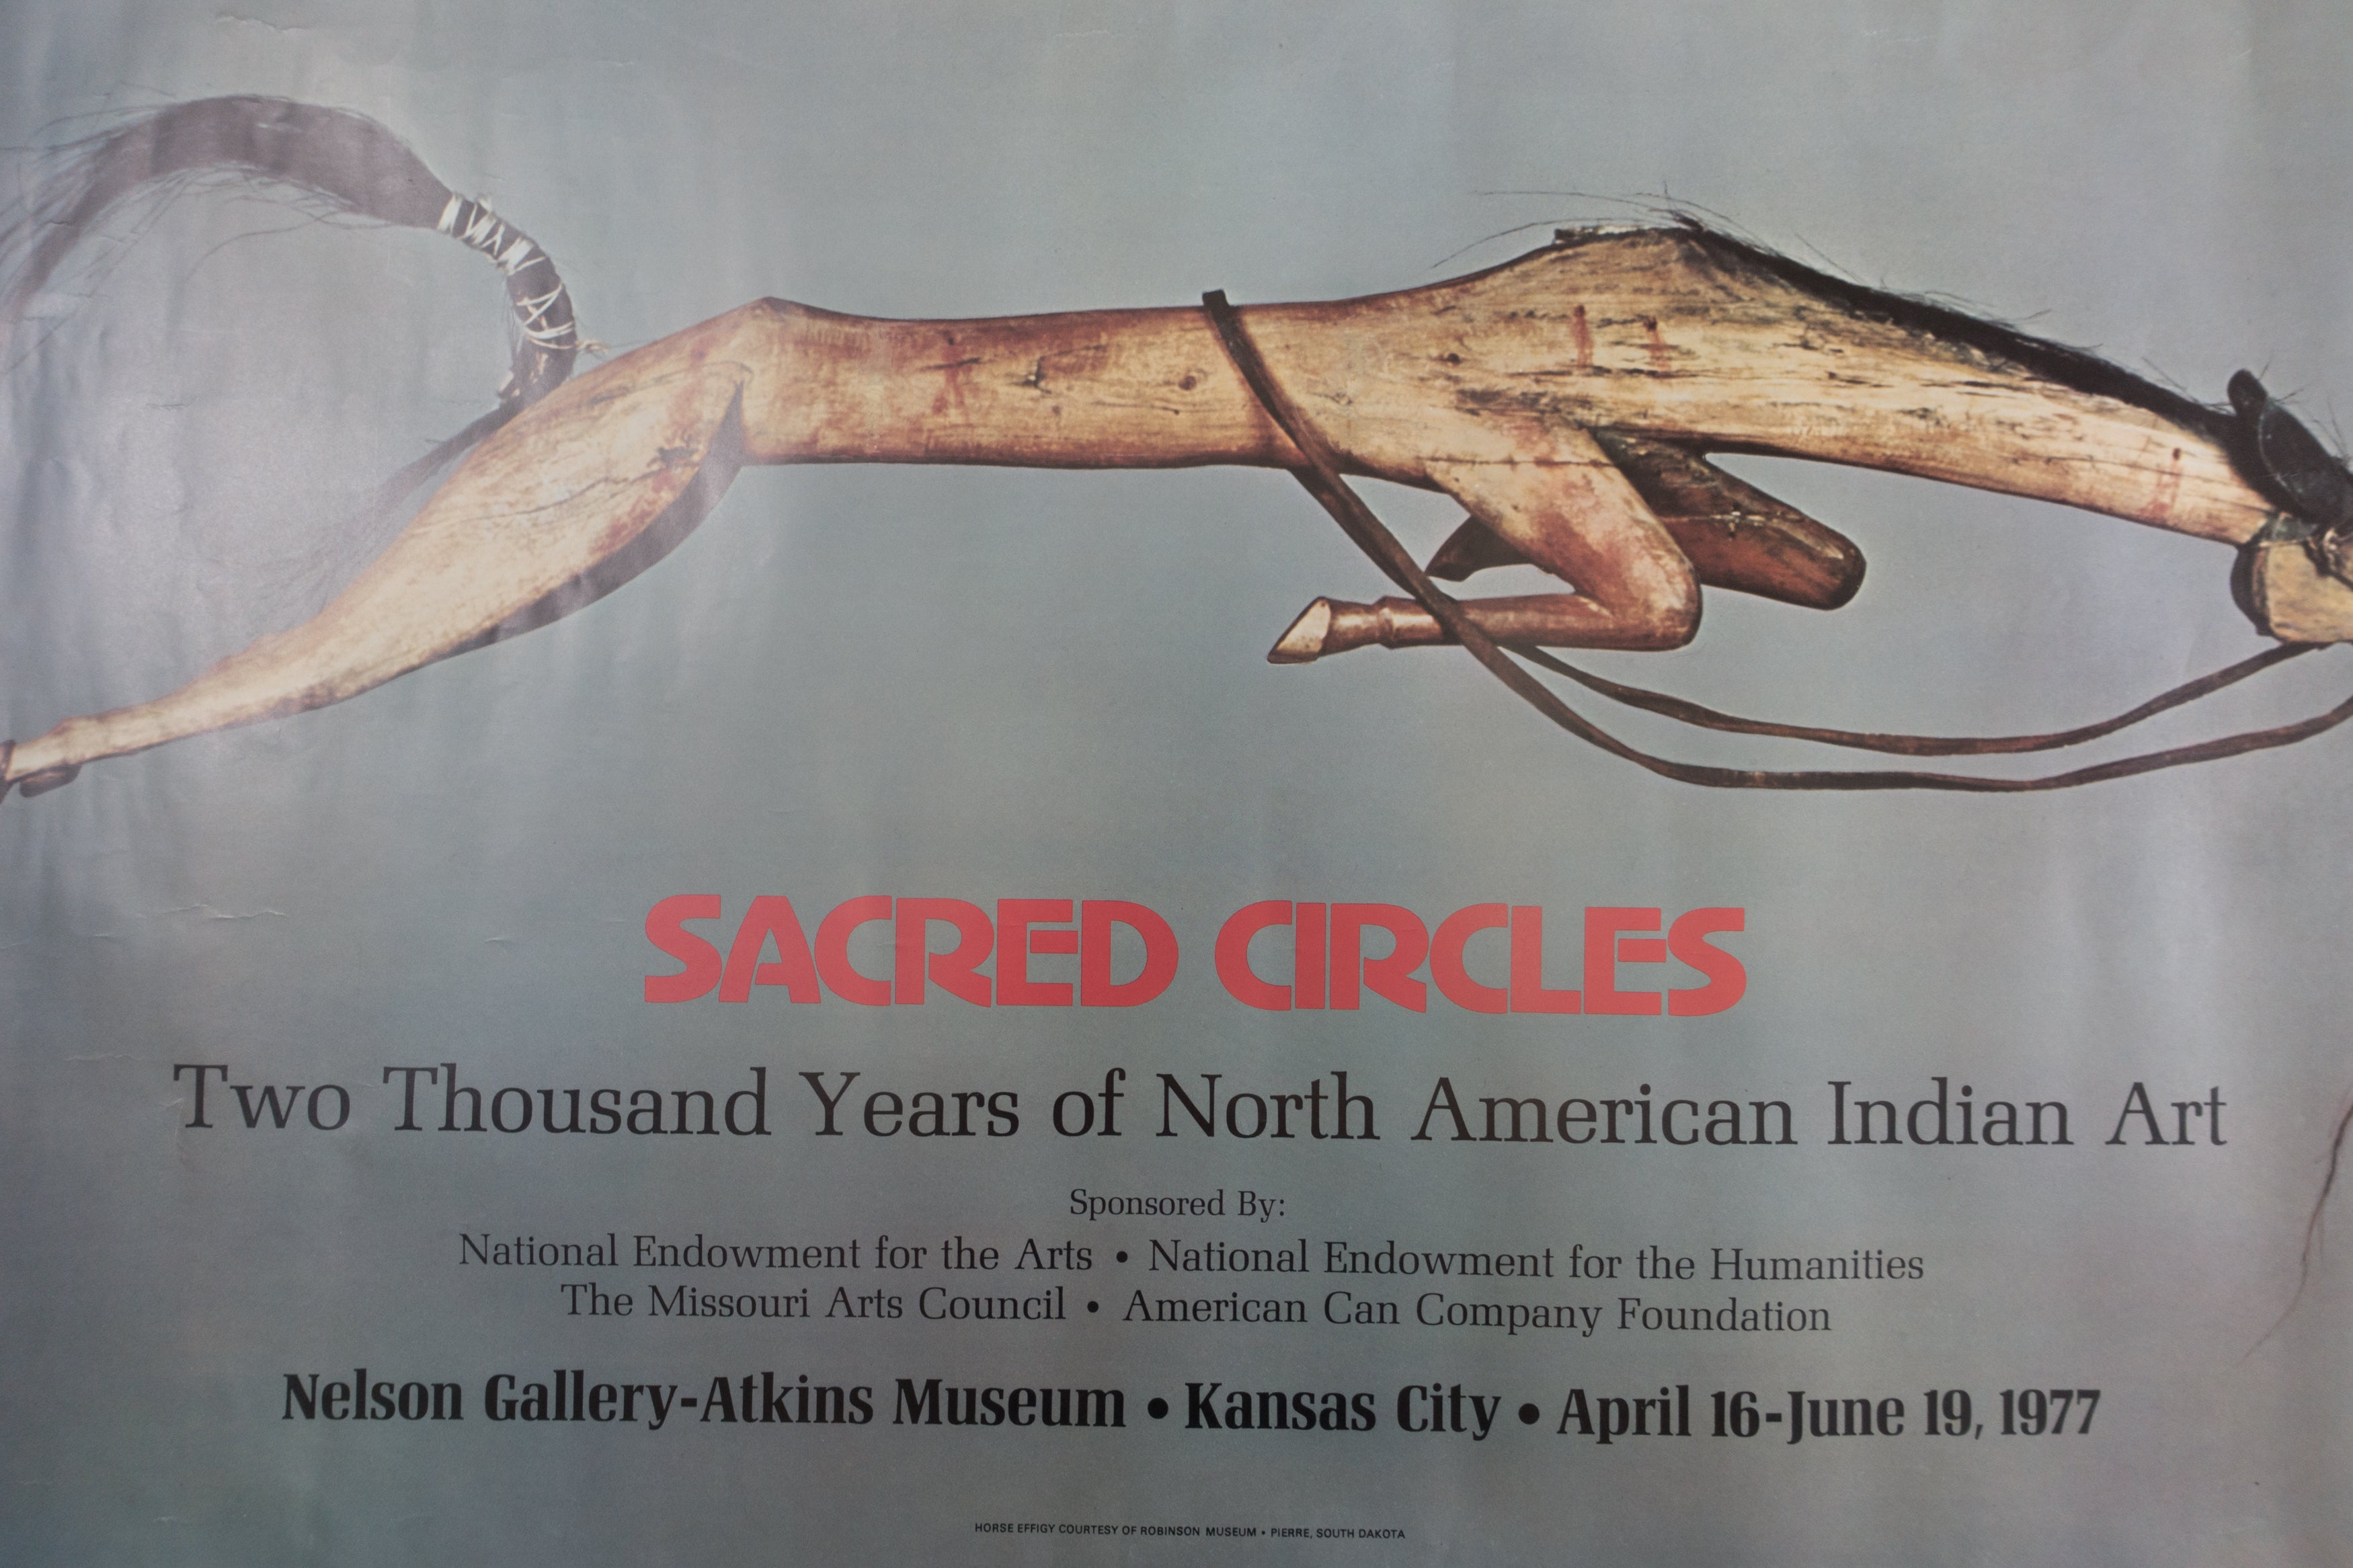 1977 Sacred Circles Exhibit Poster | Two Thousand Years of North American Indian Art Kansas City